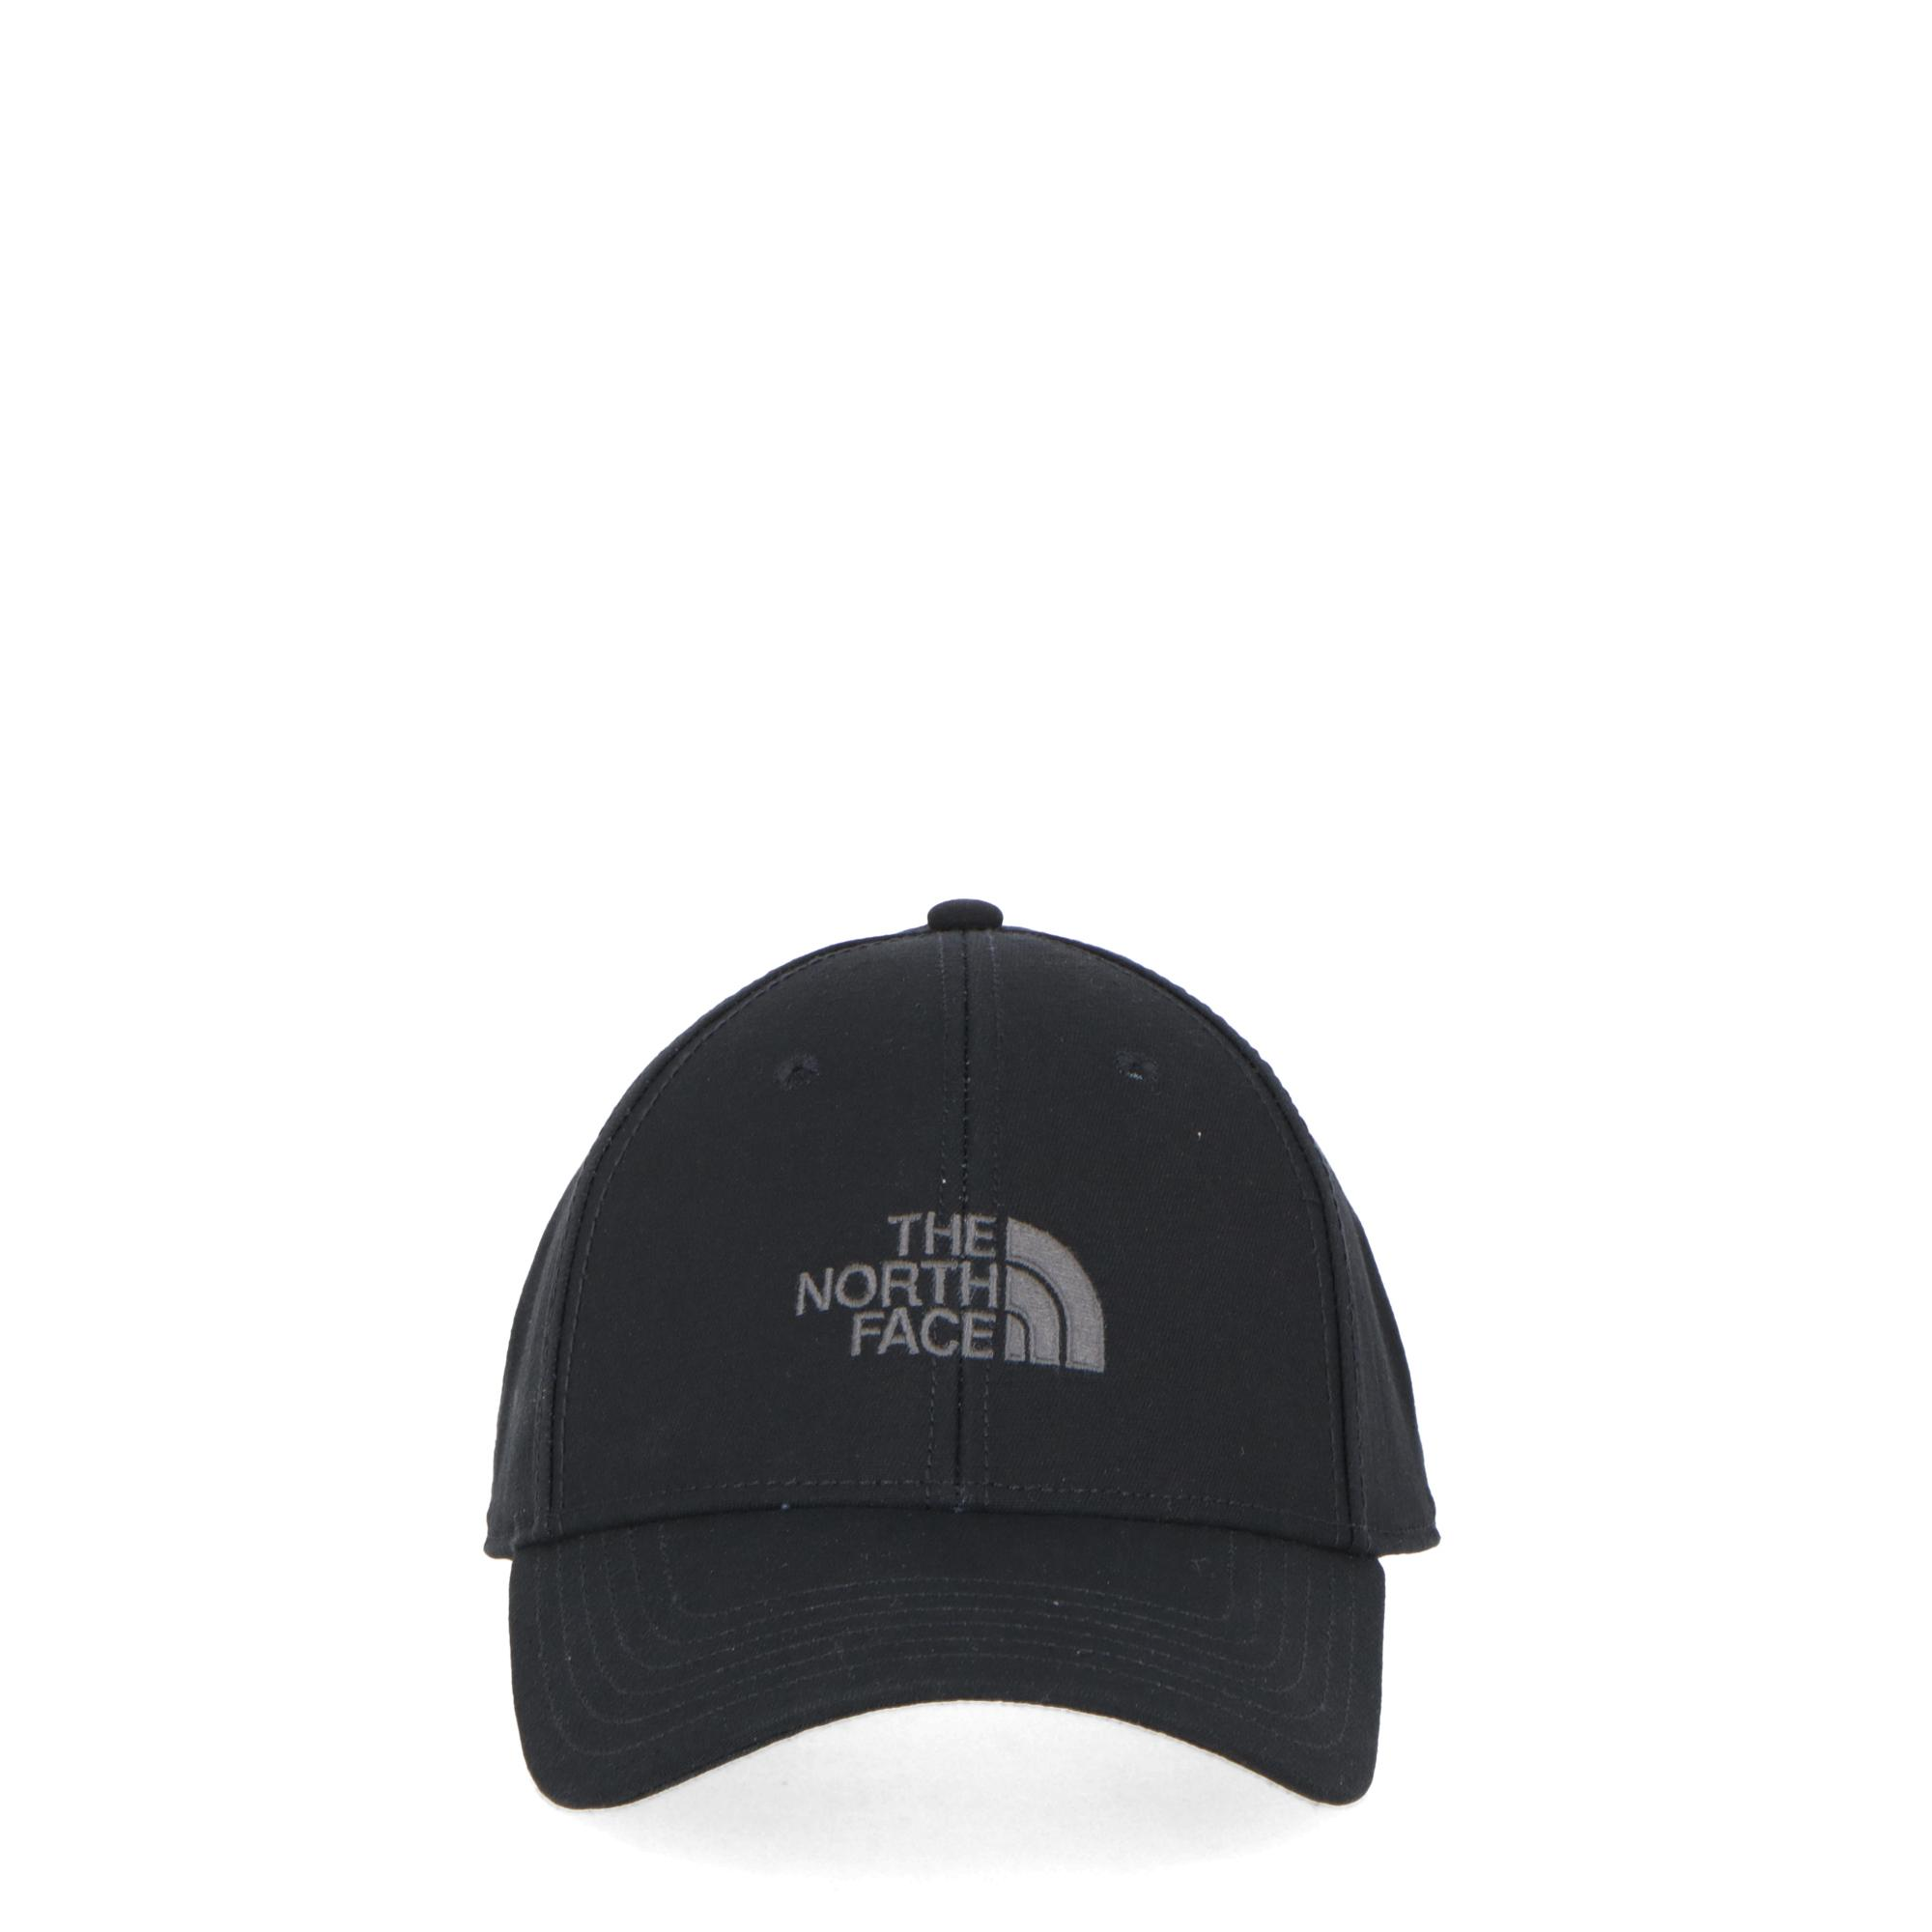 8fd4a1bb69e The North Face 66 Classic Hat Black